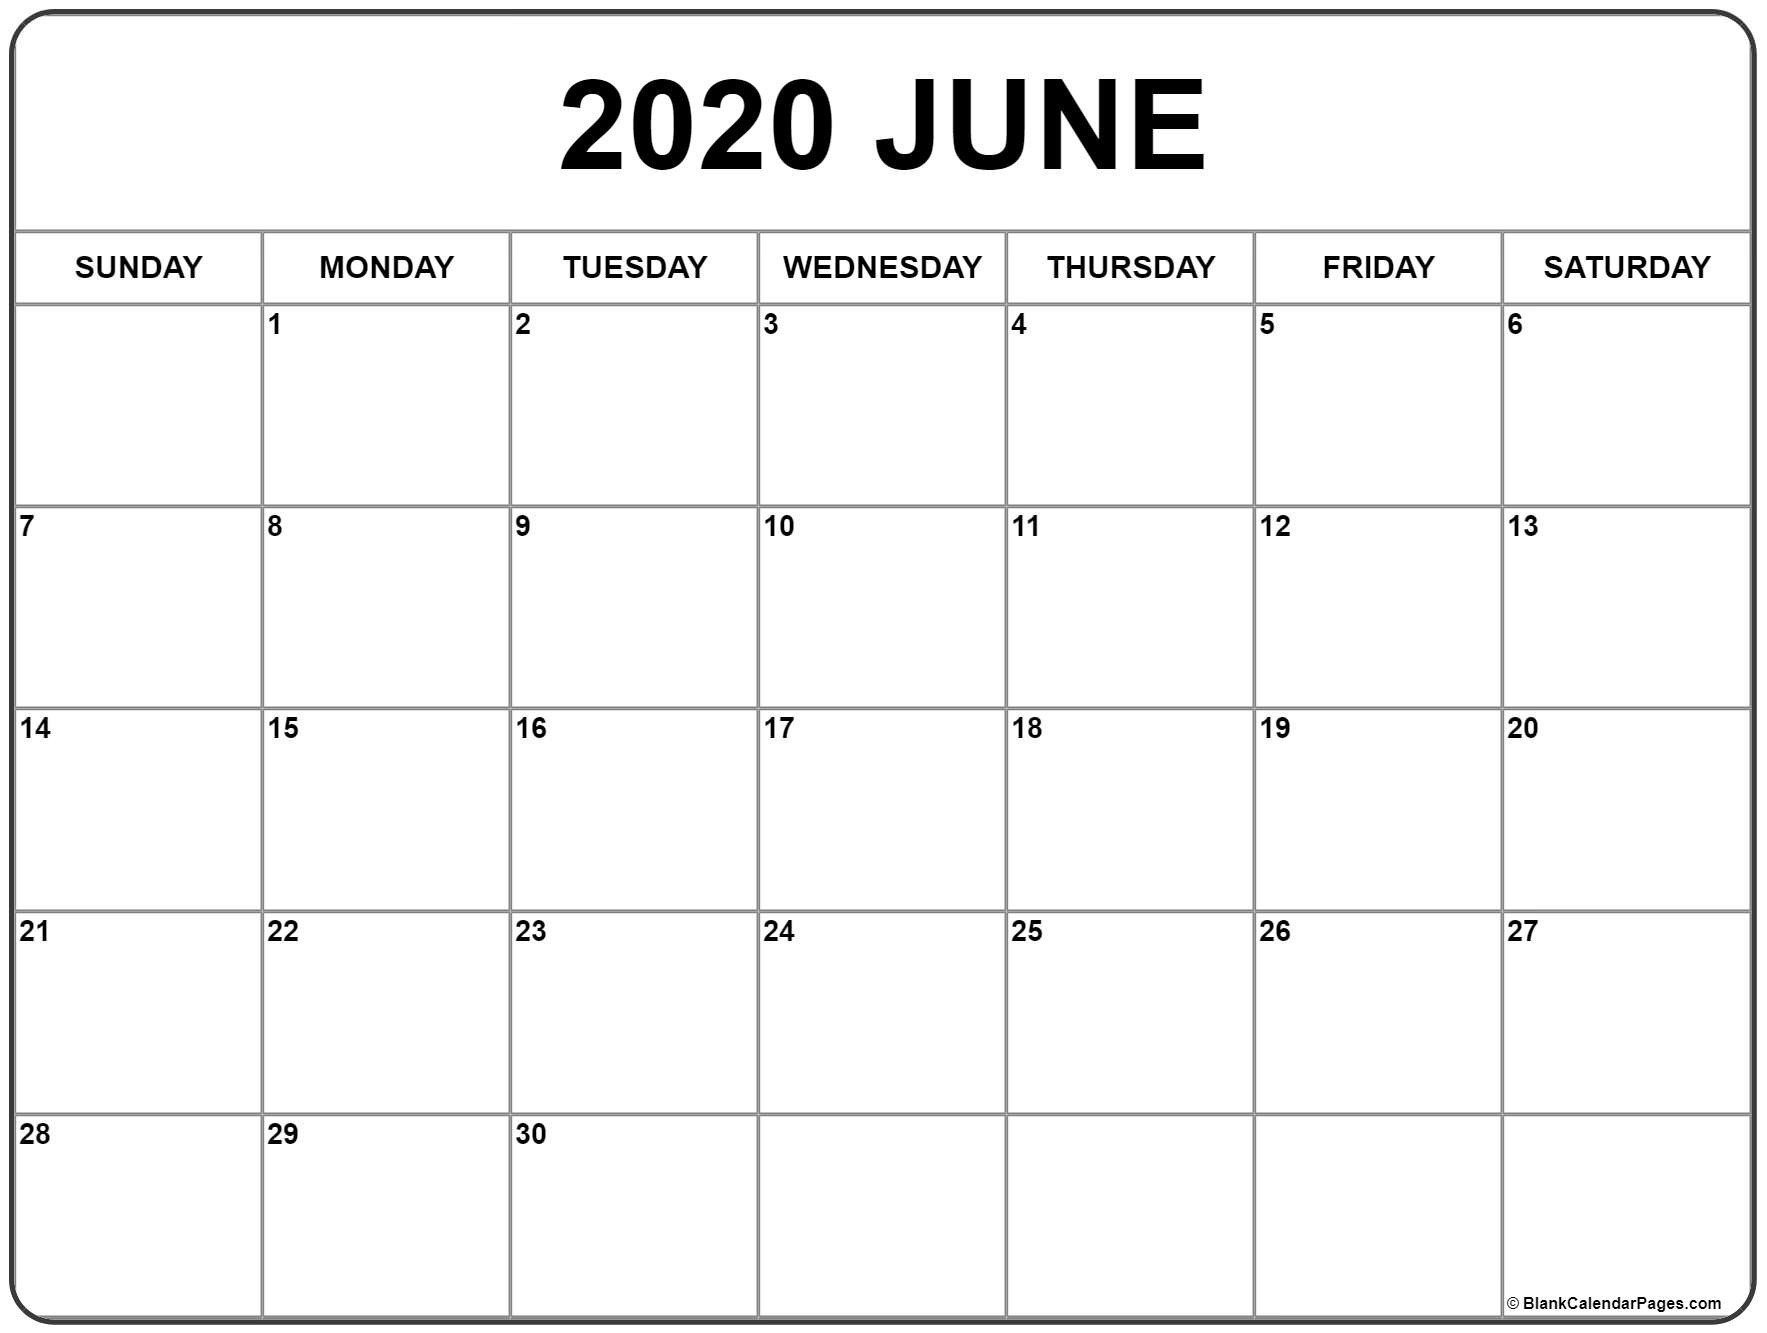 June 2020 Calendar | Free Printable Monthly Calendars-Monthly Calendar Template 2020 Printable Blank Starting Monday